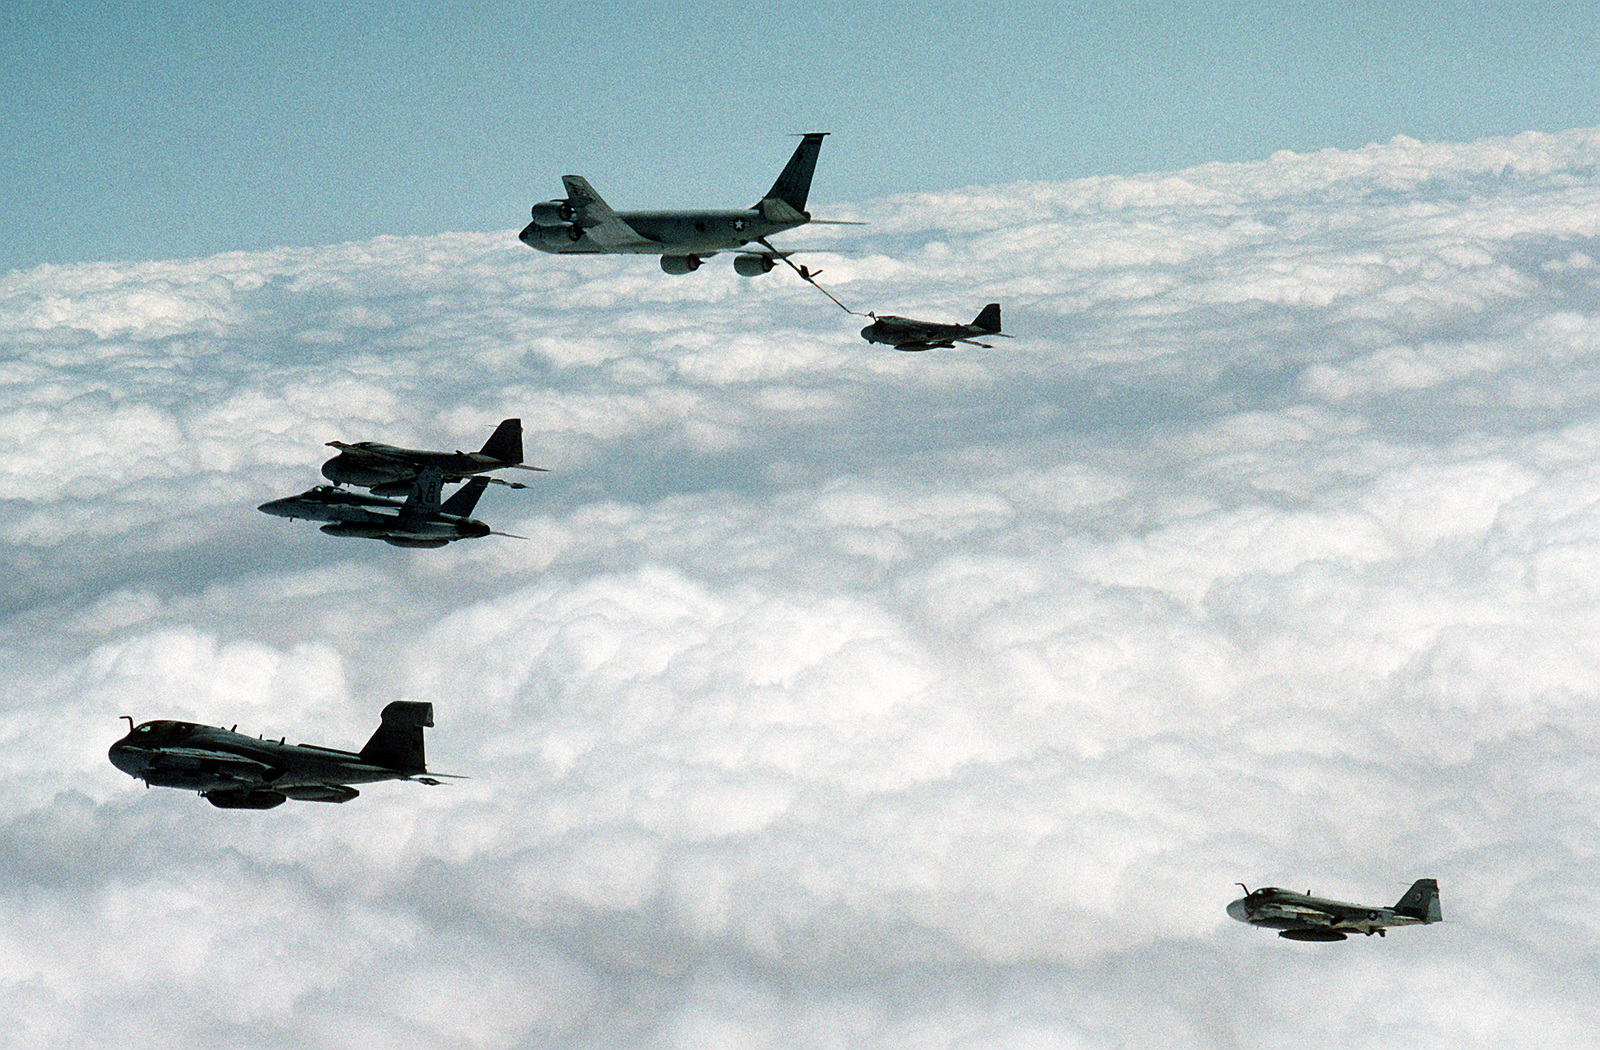 From left, an EA-6B Prowler from Tactical Electronic Warfare Squadron 140 (VAQ-140), an F/A-18C Hornet from Strike Fighter Squadron 136 (VFA-136), an A-6E Intruder attack aircraft, a U.S. Air Force KC-135R Stratotanker refueling another A-6E Intruder, and a KA-6D Intruder tanker from Attack Squadron 34 (VA-34) during flight operations off the nuclear-powered USS DWIGHT D. EISENHOWER (CVN-69) in the Persian Gulf